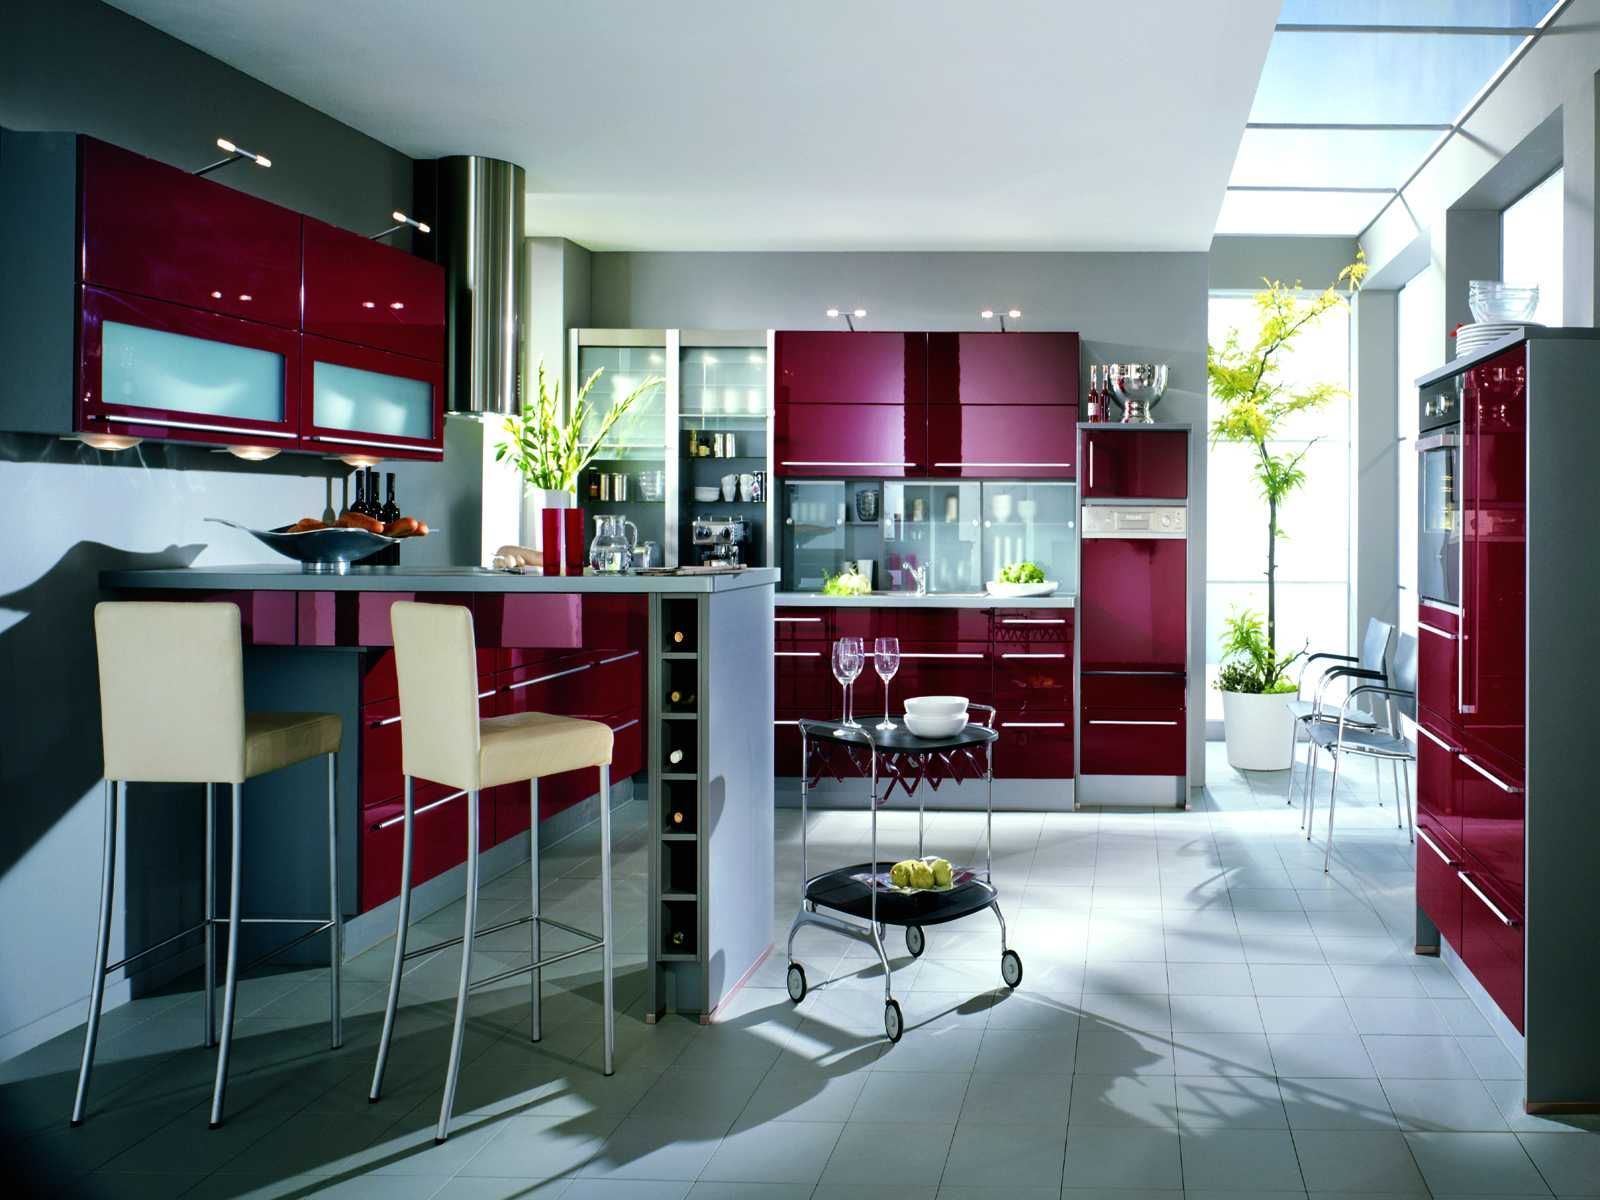 Stylish Kitchen Cabinets Burgundy Kitchen Furniture For Modern Home Interior Home